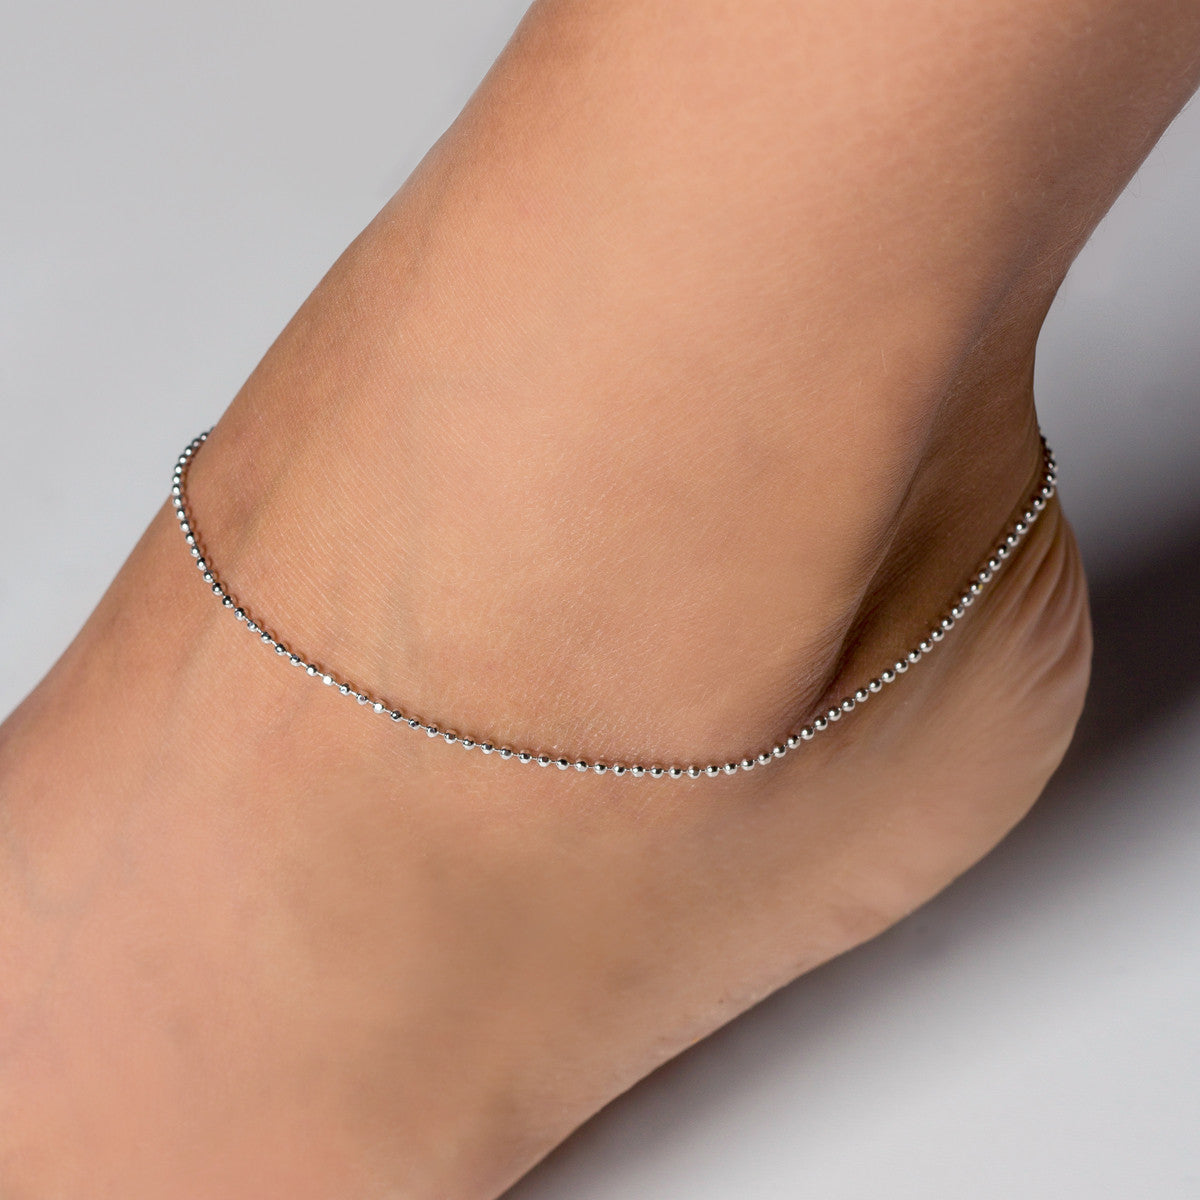 silver anklets bracelet chain anklet real women foot heart jewelry fine for ankle bracelets product crystal